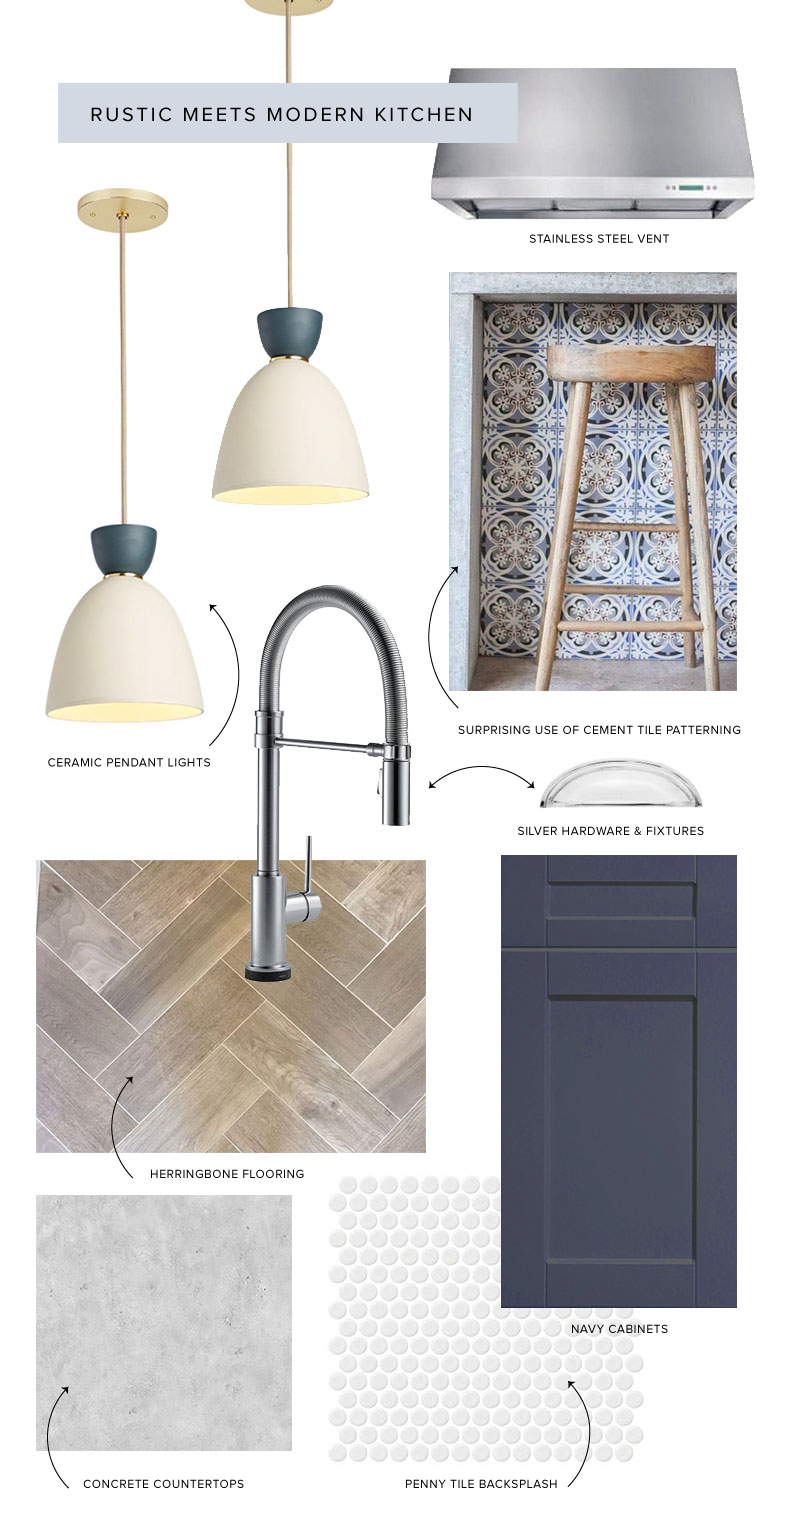 WD x Delta Faucet: Kitchen Moodboard Design #moodboards